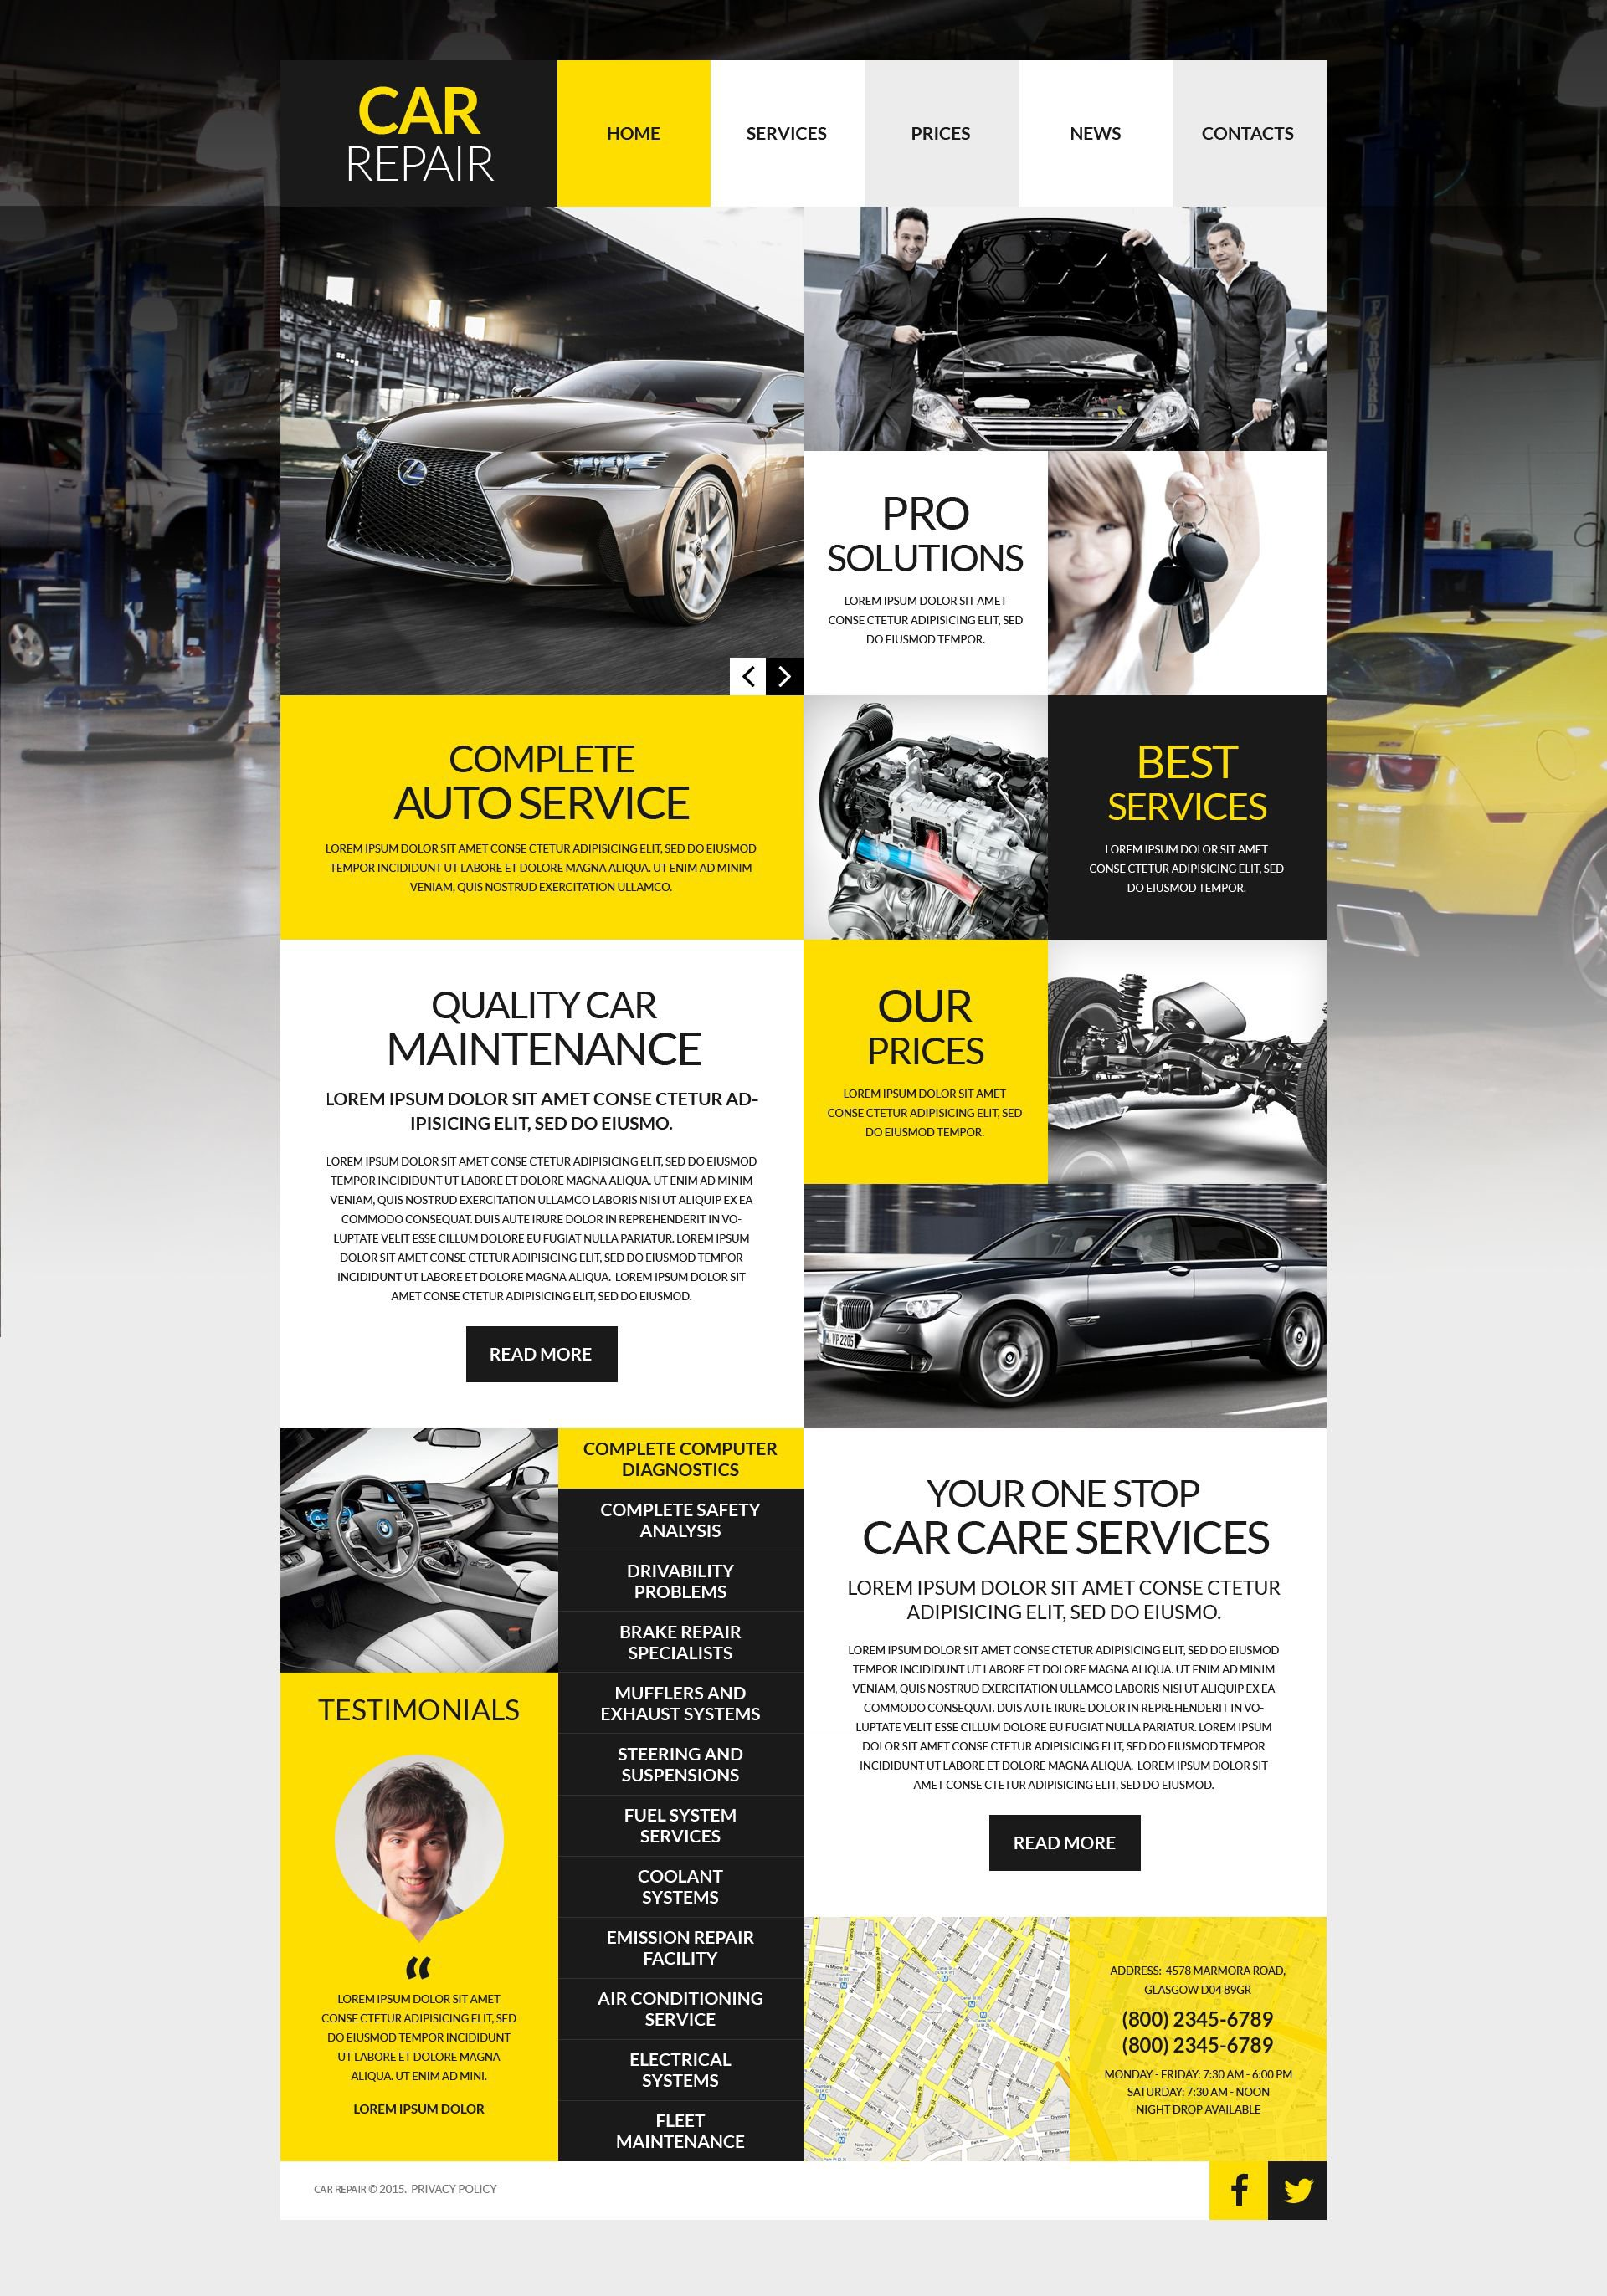 The Car Repair WordPress Design 53012, one of the best WordPress themes of its kind (cars, most popular), also known as car repair WordPress template, recovery WordPress template, repairs WordPress template, automobile WordPress template, auto repair WordPress template, maintenance WordPress template, service care WordPress template, advice WordPress template, station and related with car repair, recovery, repairs, automobile, auto repair, maintenance, service care, advice, station, etc.